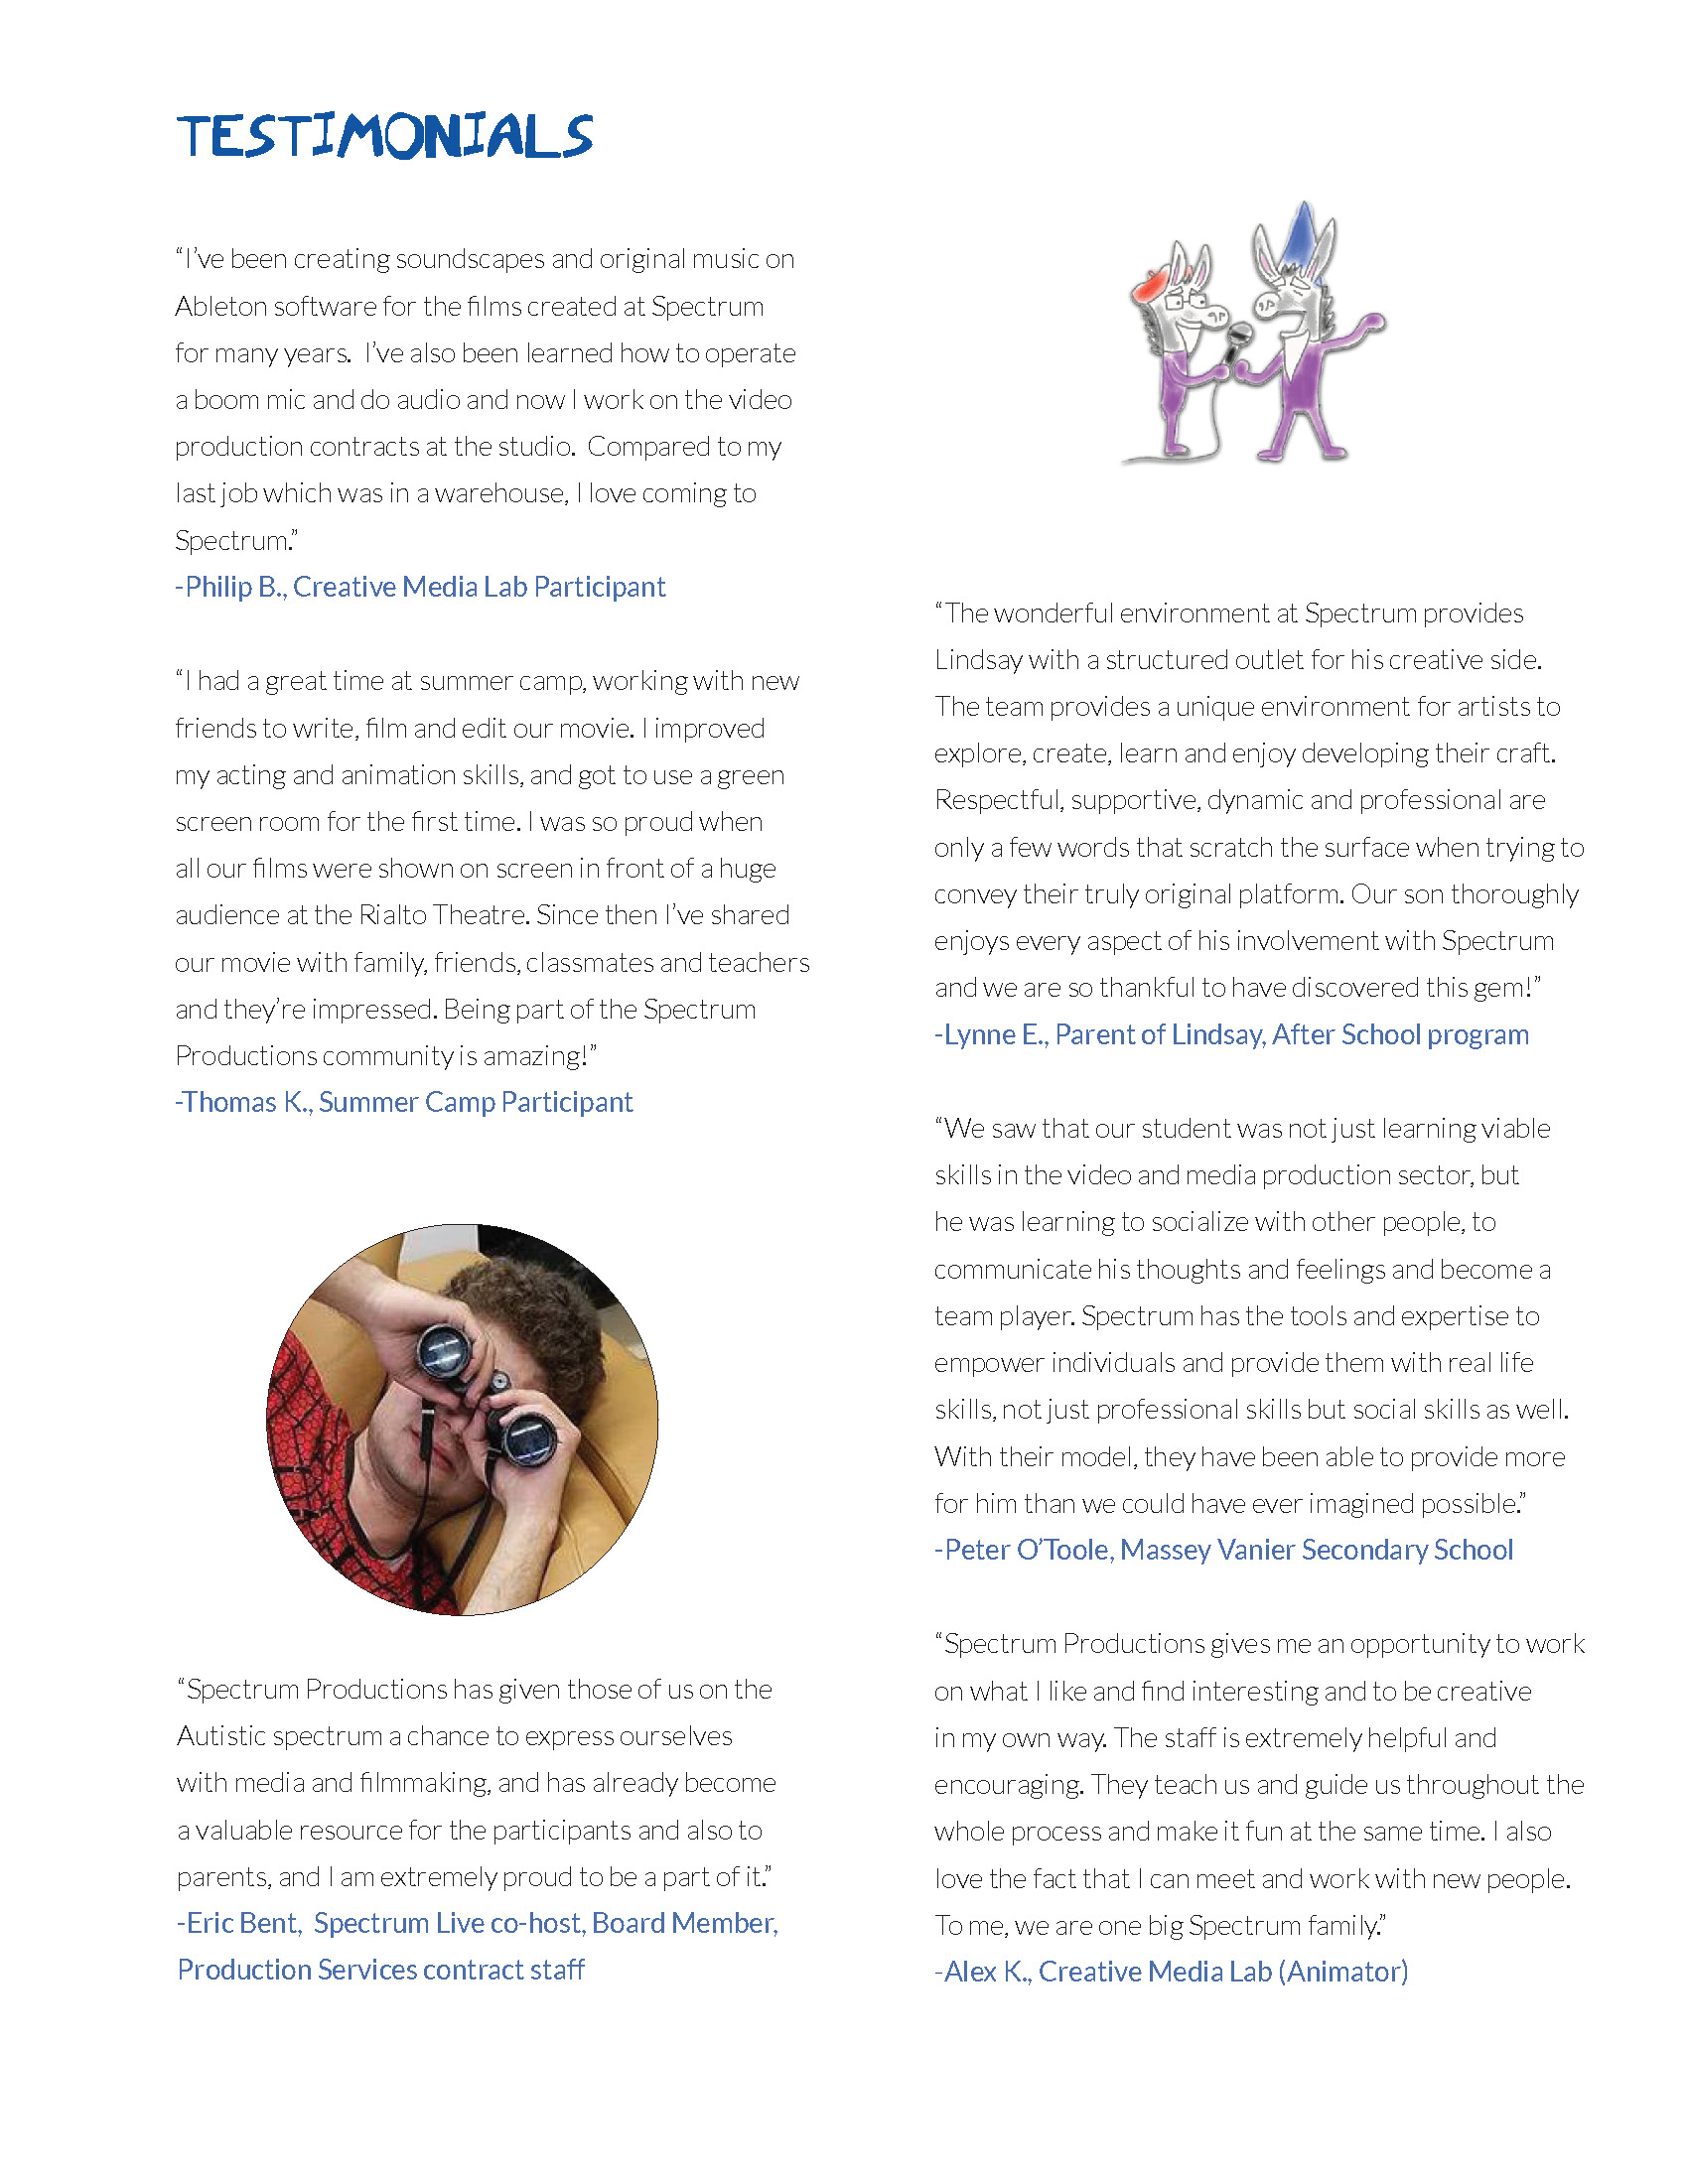 ANNUAL REPORT 2018 _OFFICIAL_Page_11.jpg